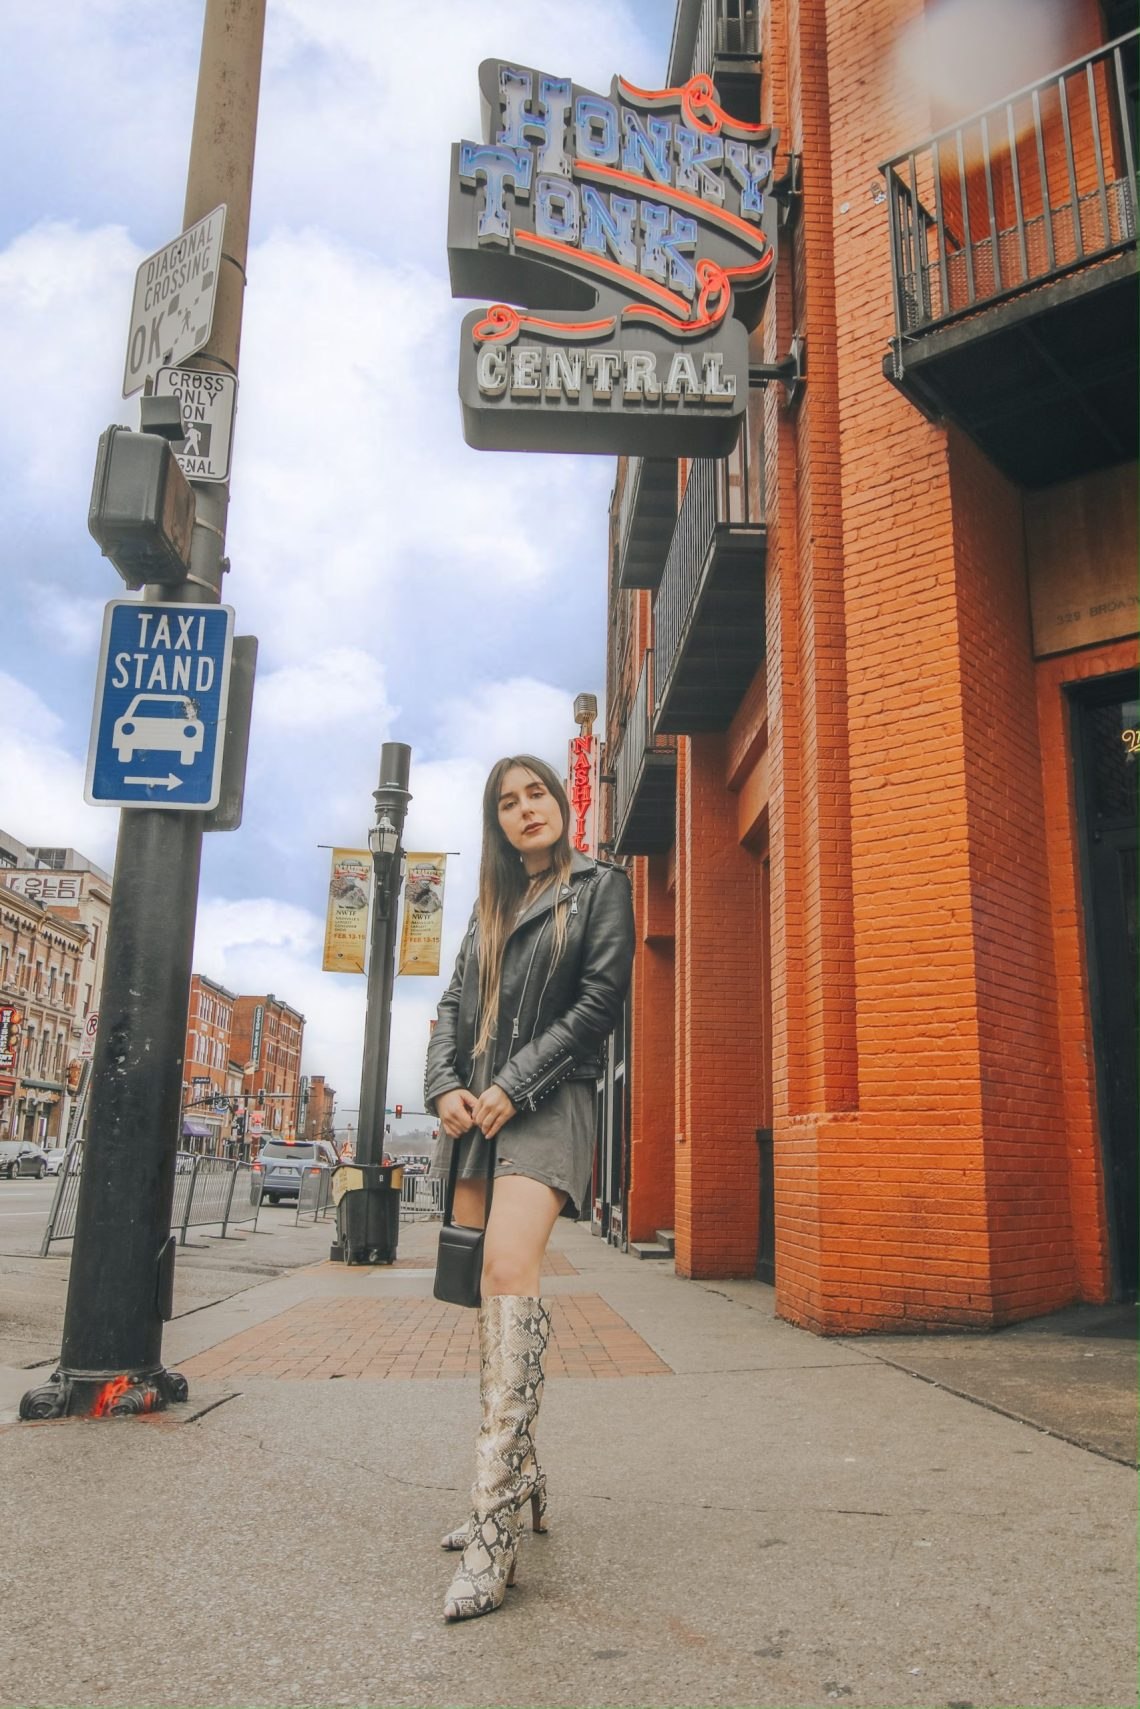 Broadway, Broadway St, neon signs, honky tonks, live music, Nashville, TN, Instagram, photography, the best Instagram spots in Nashville, Nashville travel guide, travel, The Urban Darling, travel blogger, fashion blogger.